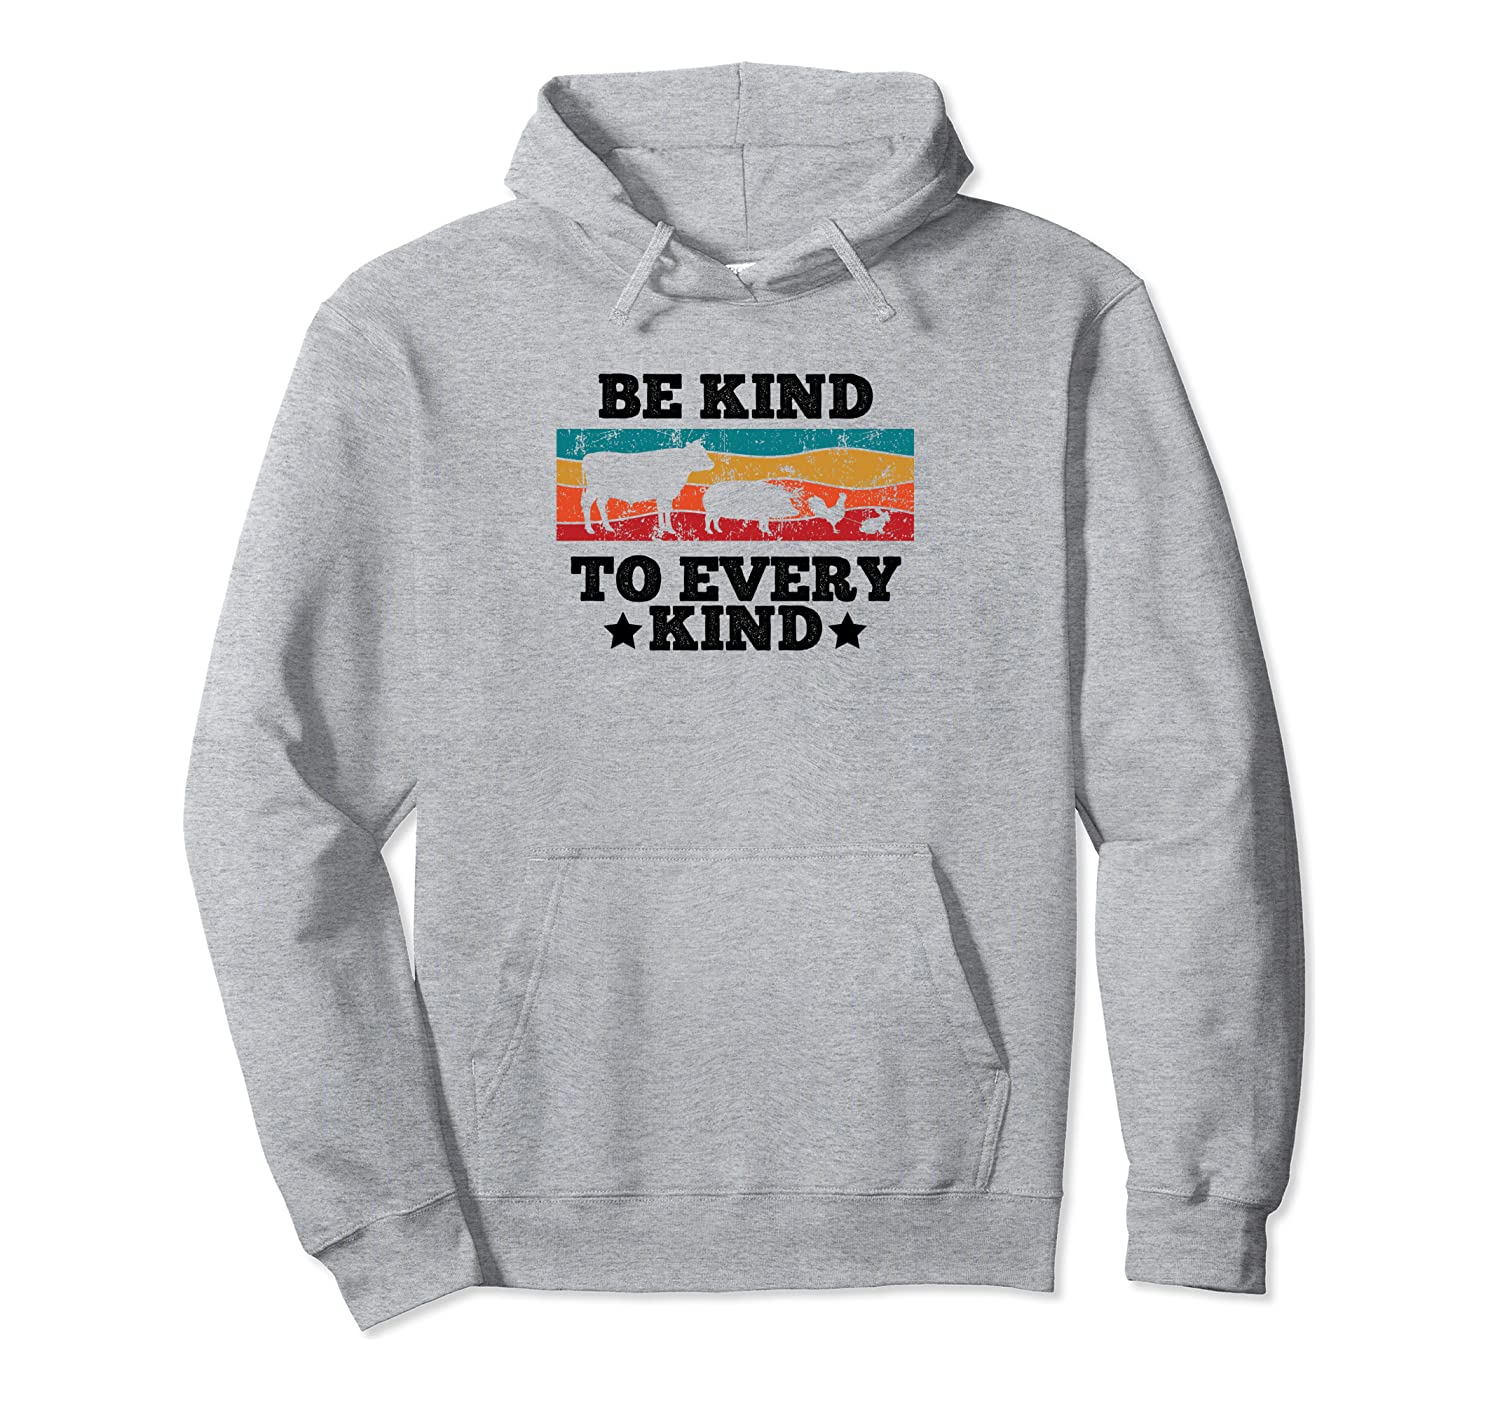 Be Kind to Animals Anti Animal Cruelty Vegetarian Pullover Hoodie